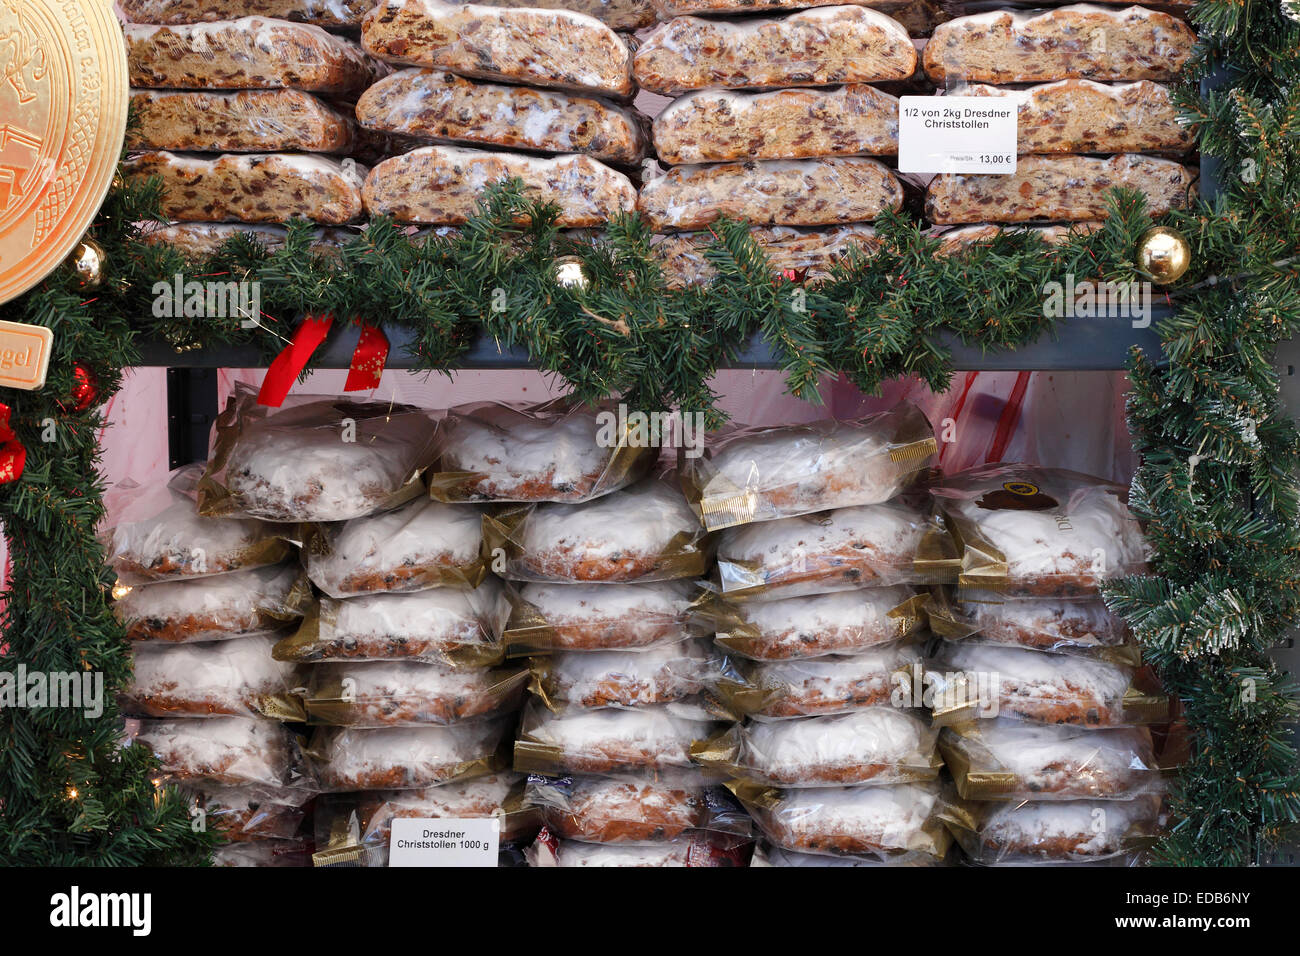 Christmas Stollen on Christmas market in Dresden, Germany - Traditional Sweet Fruit Loaf with Icing Sugar - Stock Image